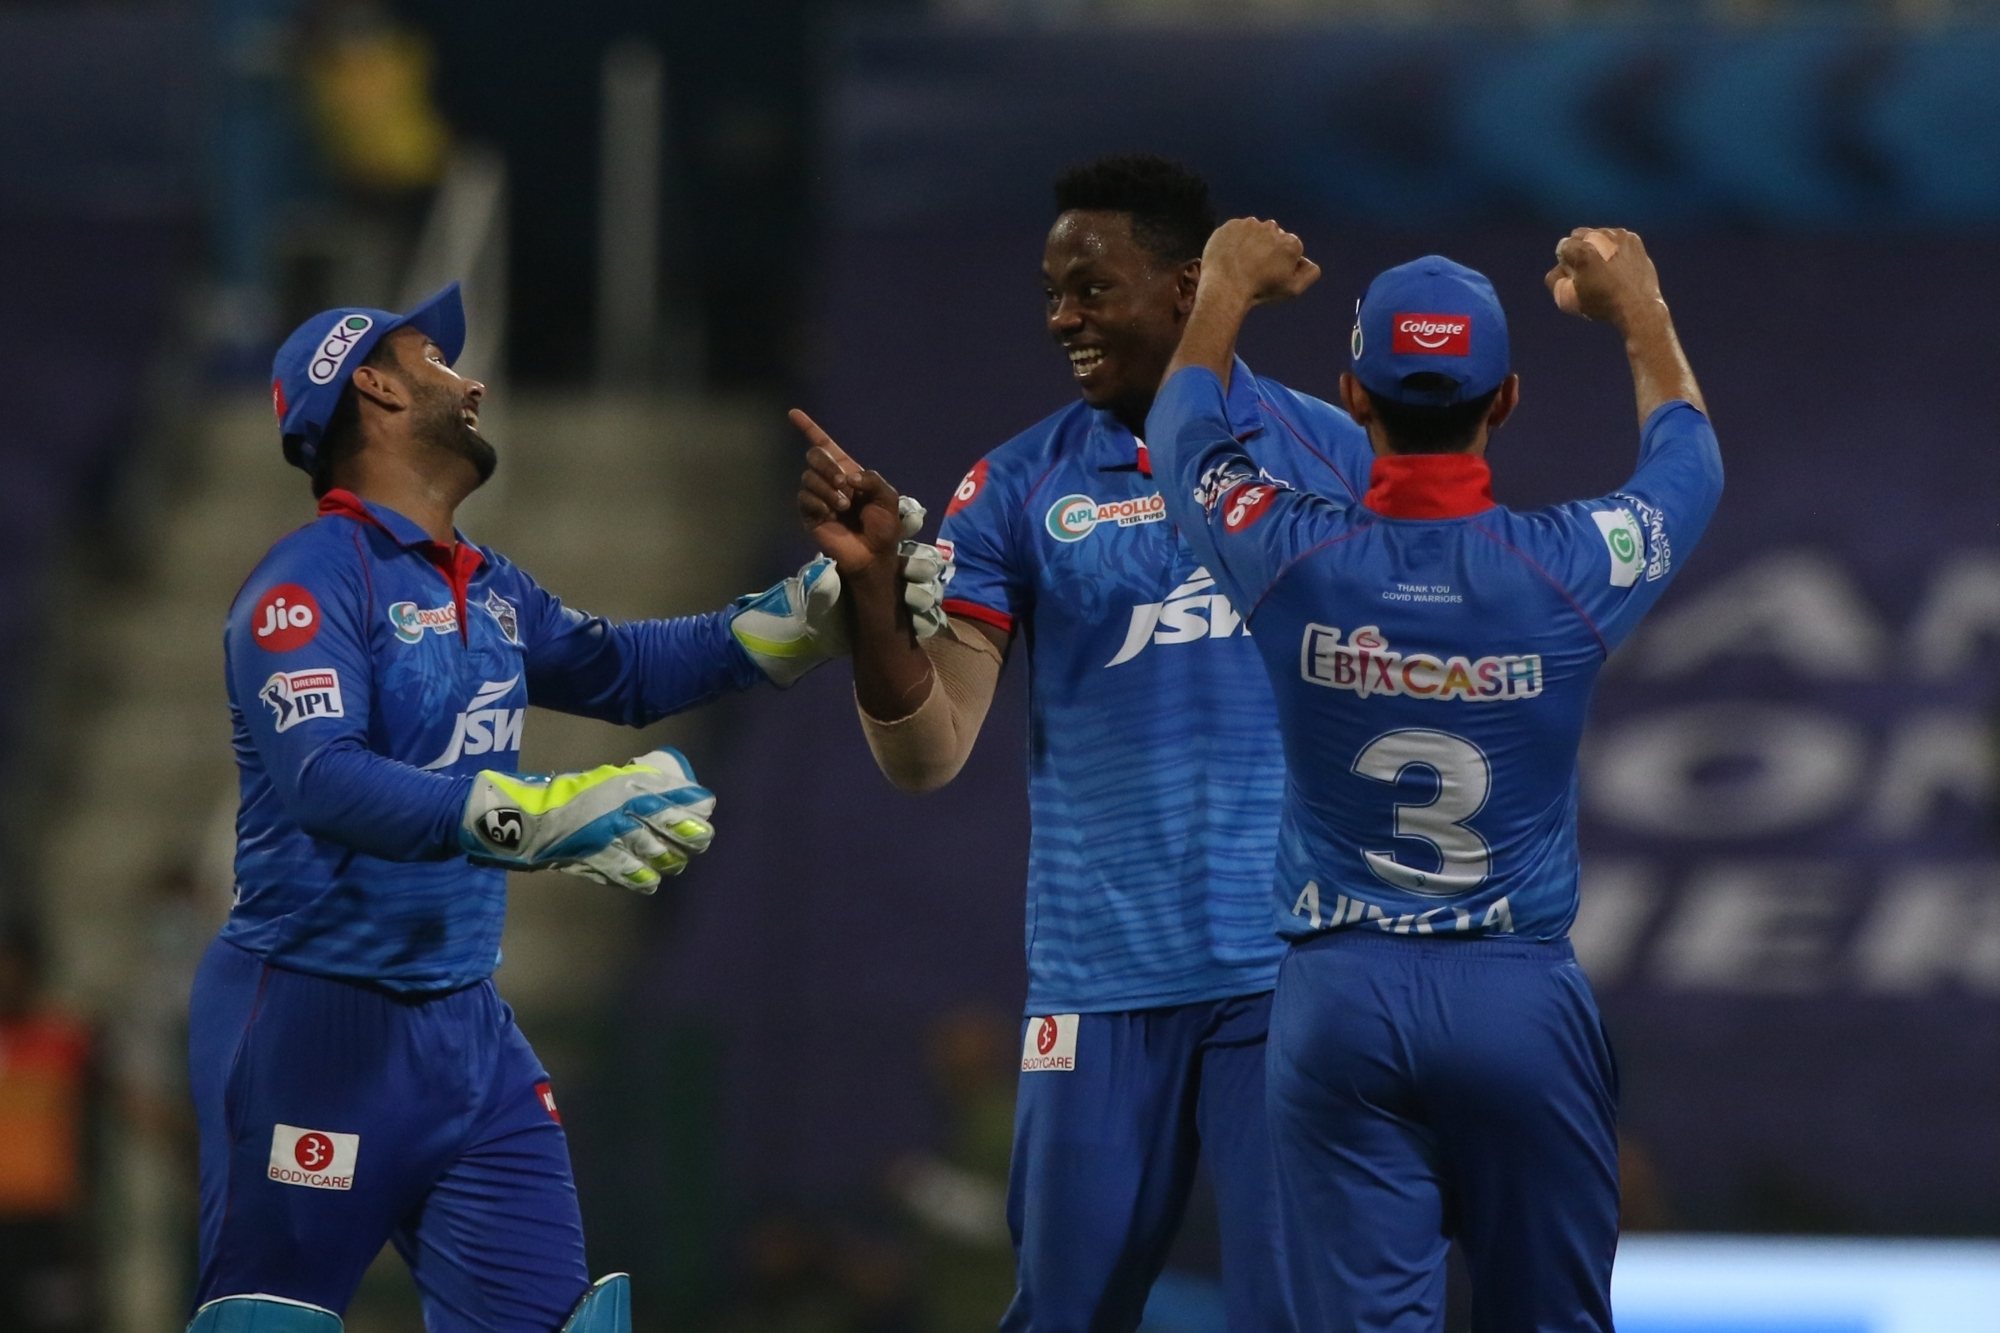 Delhi Capitals slipped to third position in the points table | IANS